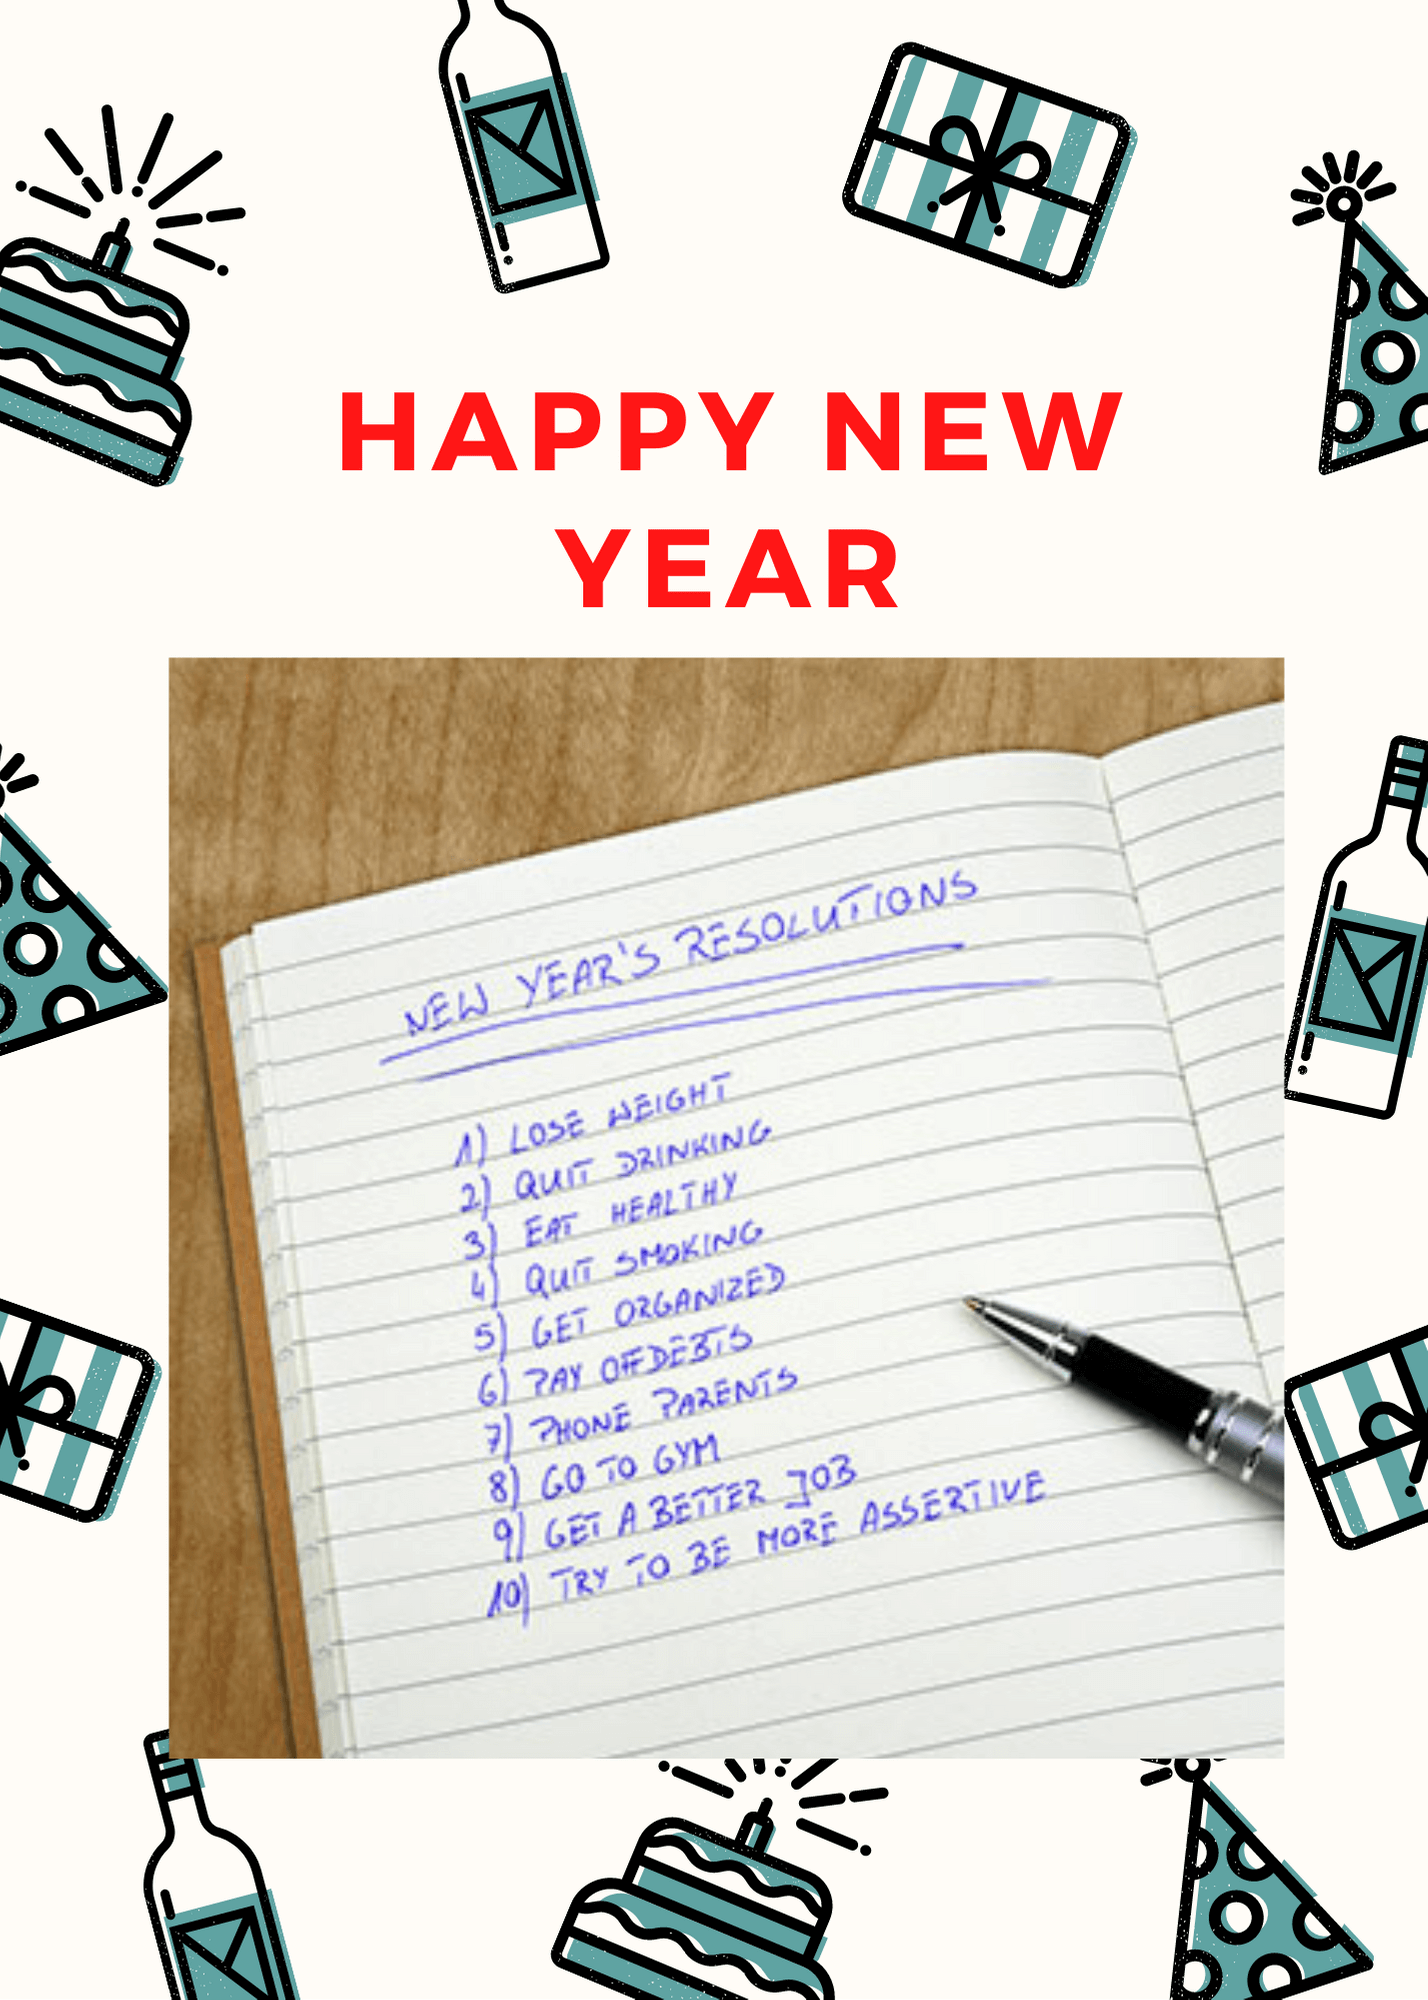 Essay on Happy New Year For Students